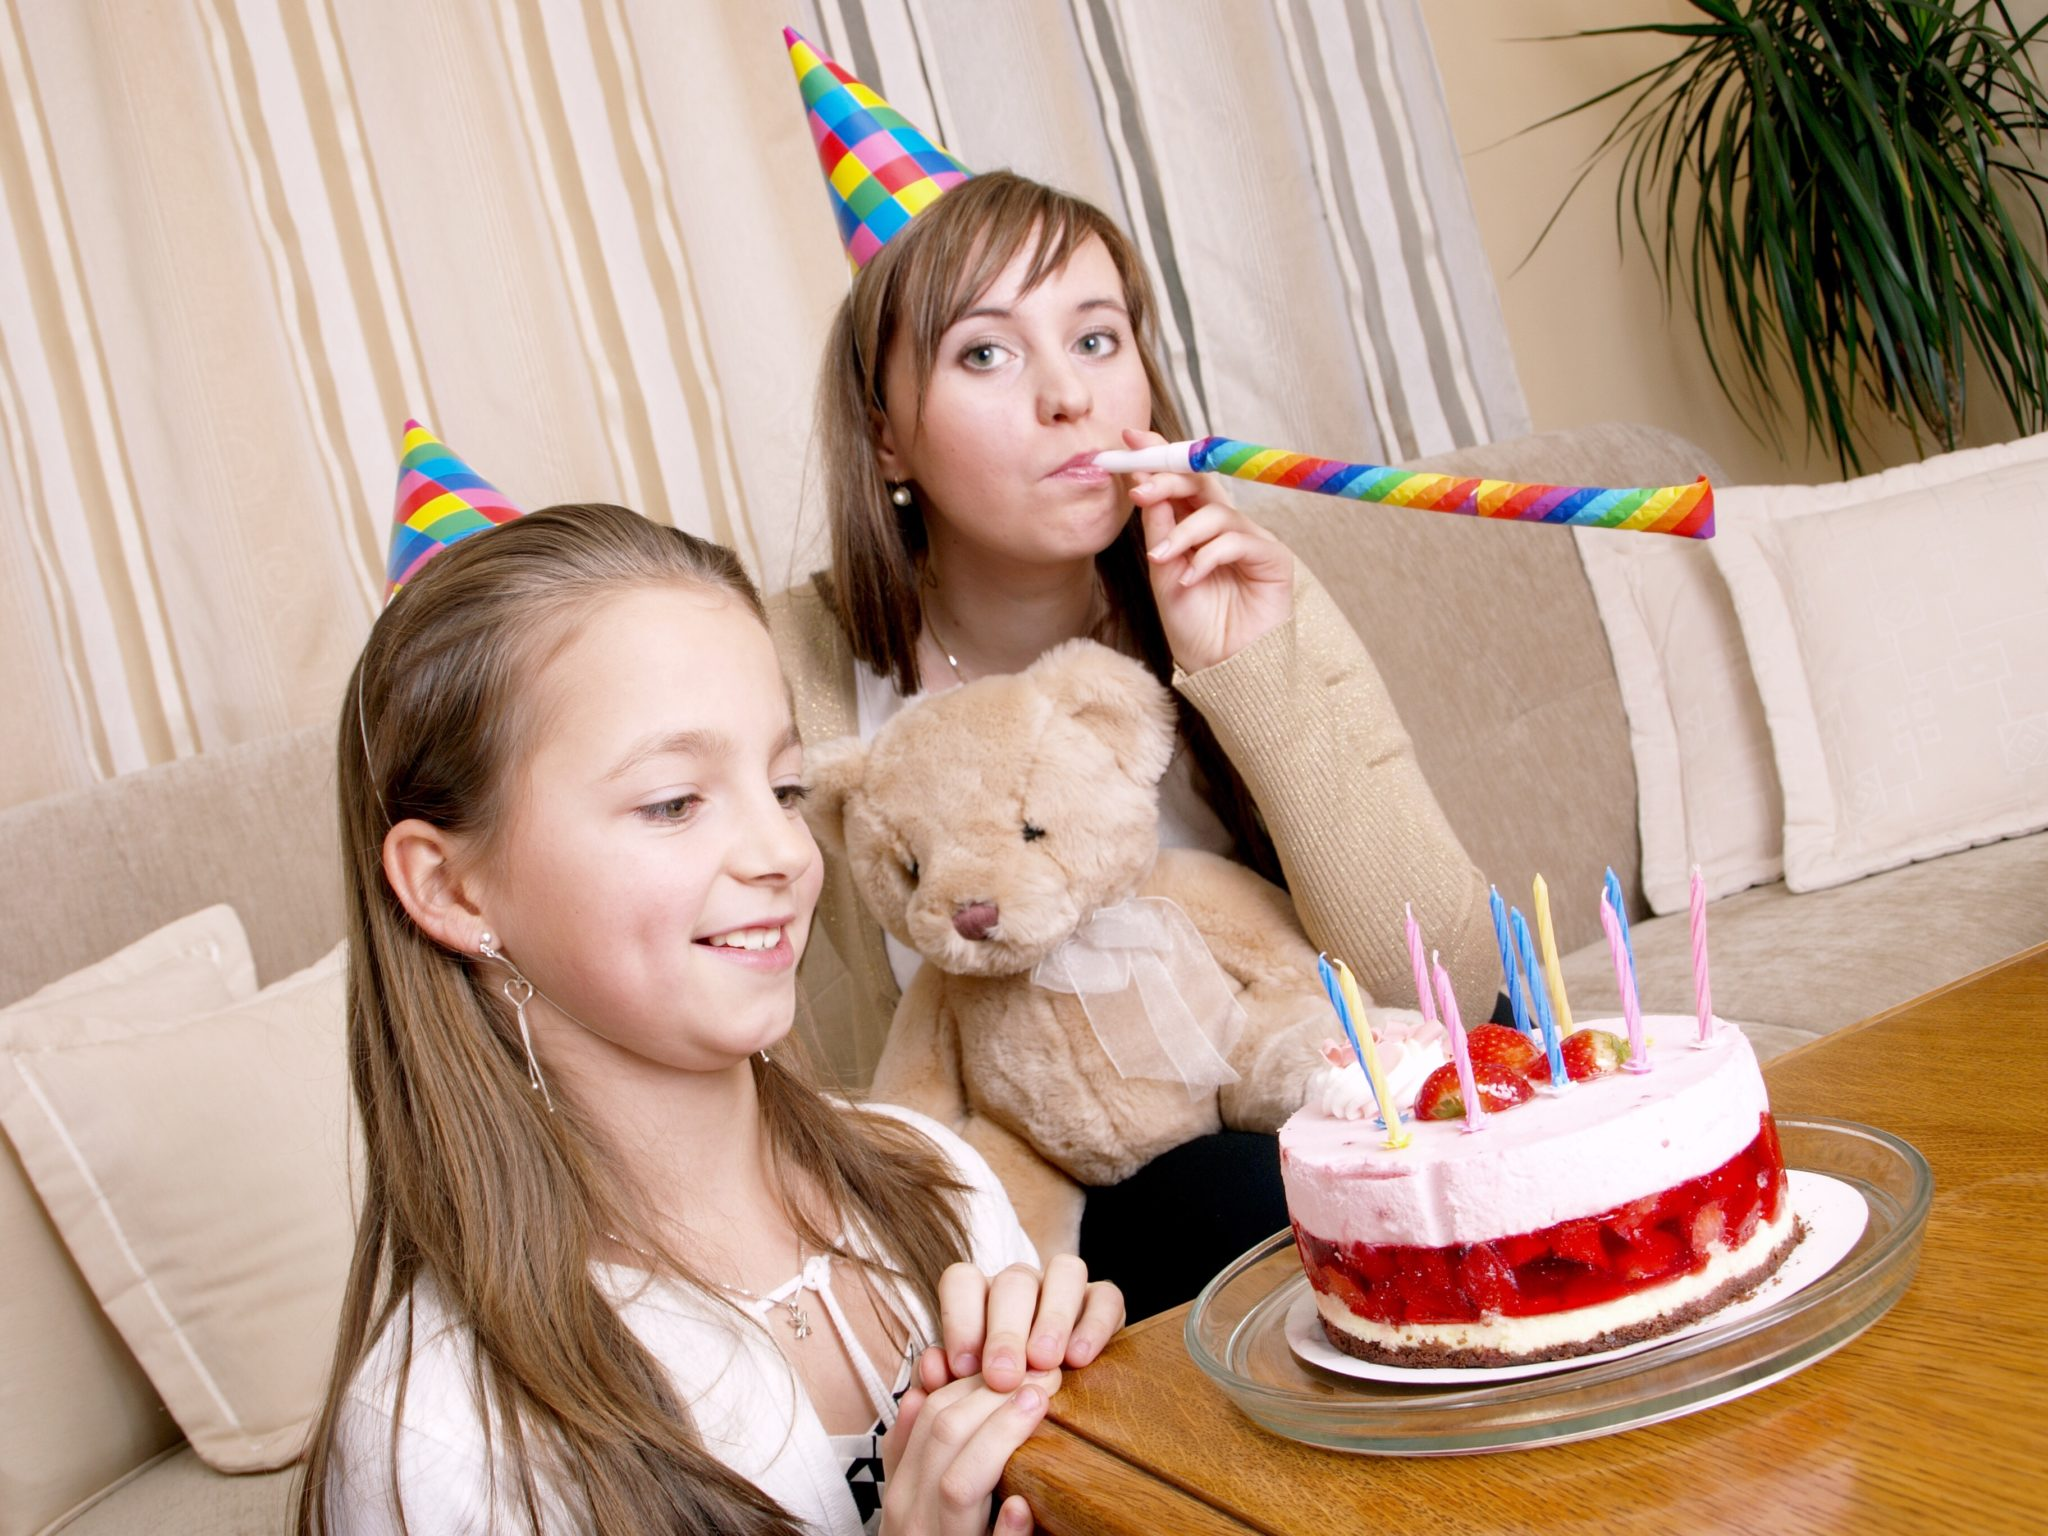 Mother and daughter with birthday cake.